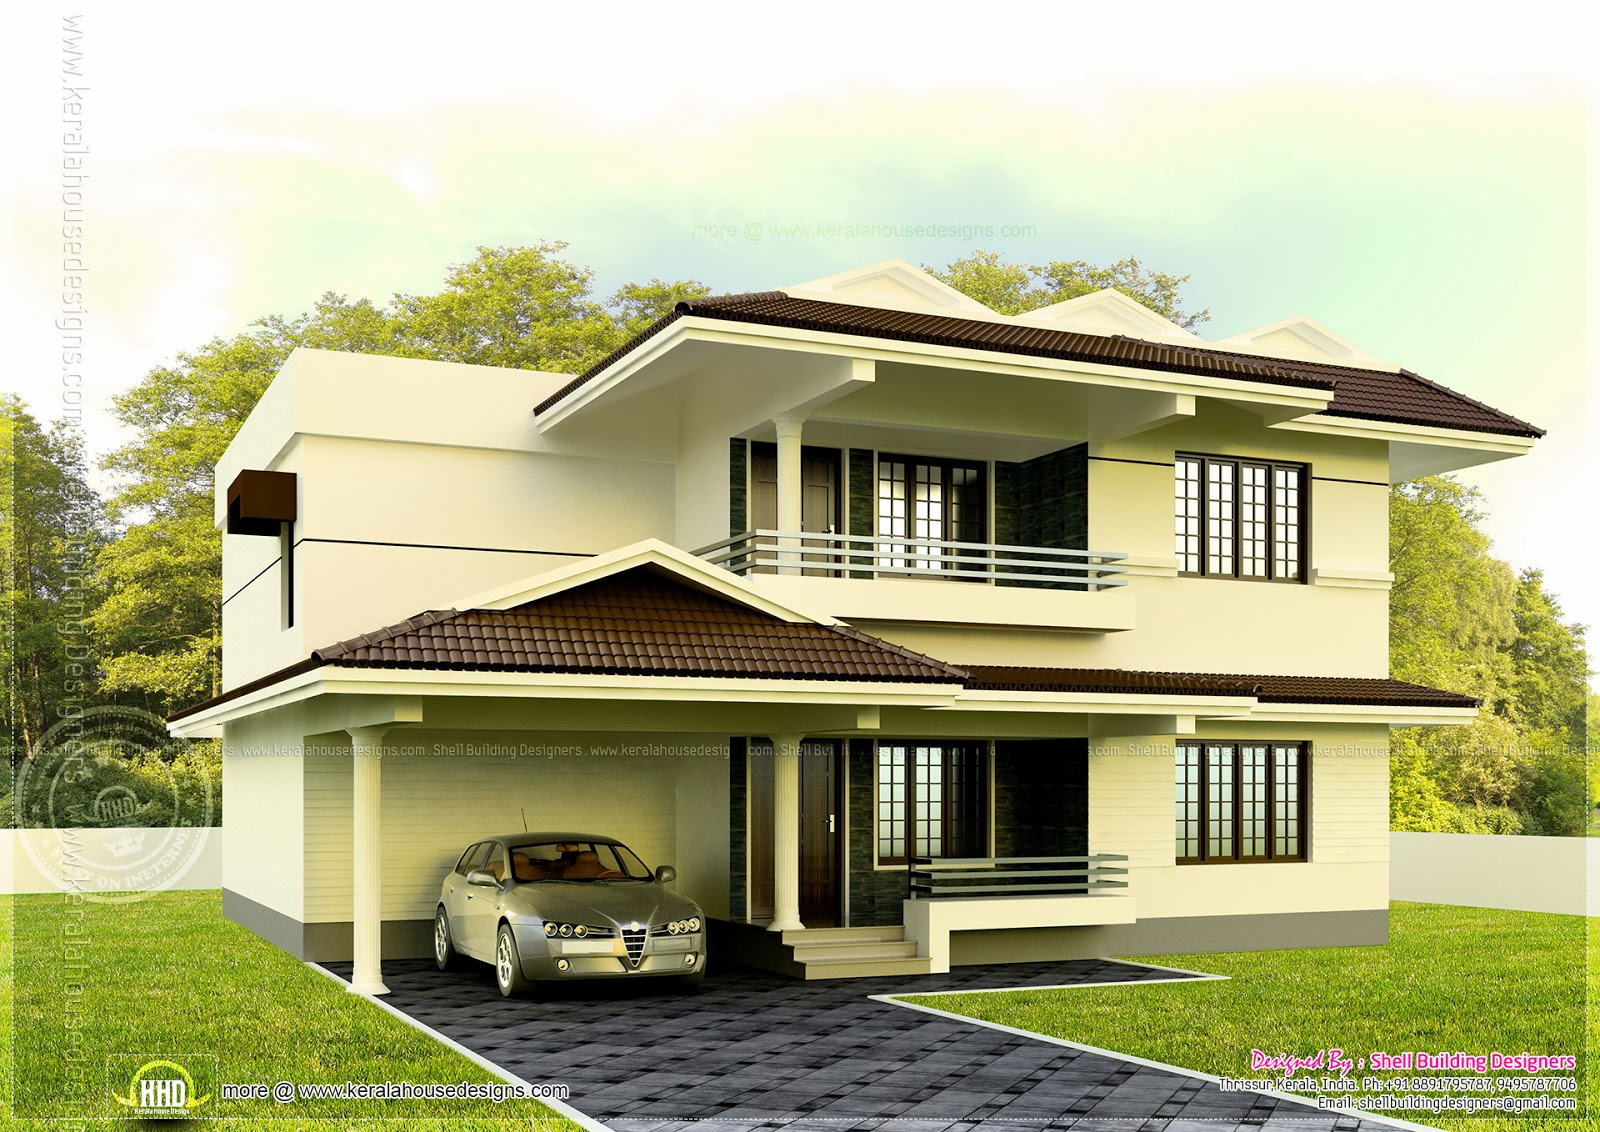 4 bedroom house exterior in 1901 square feet home kerala - Exterior designs of houses in india ...